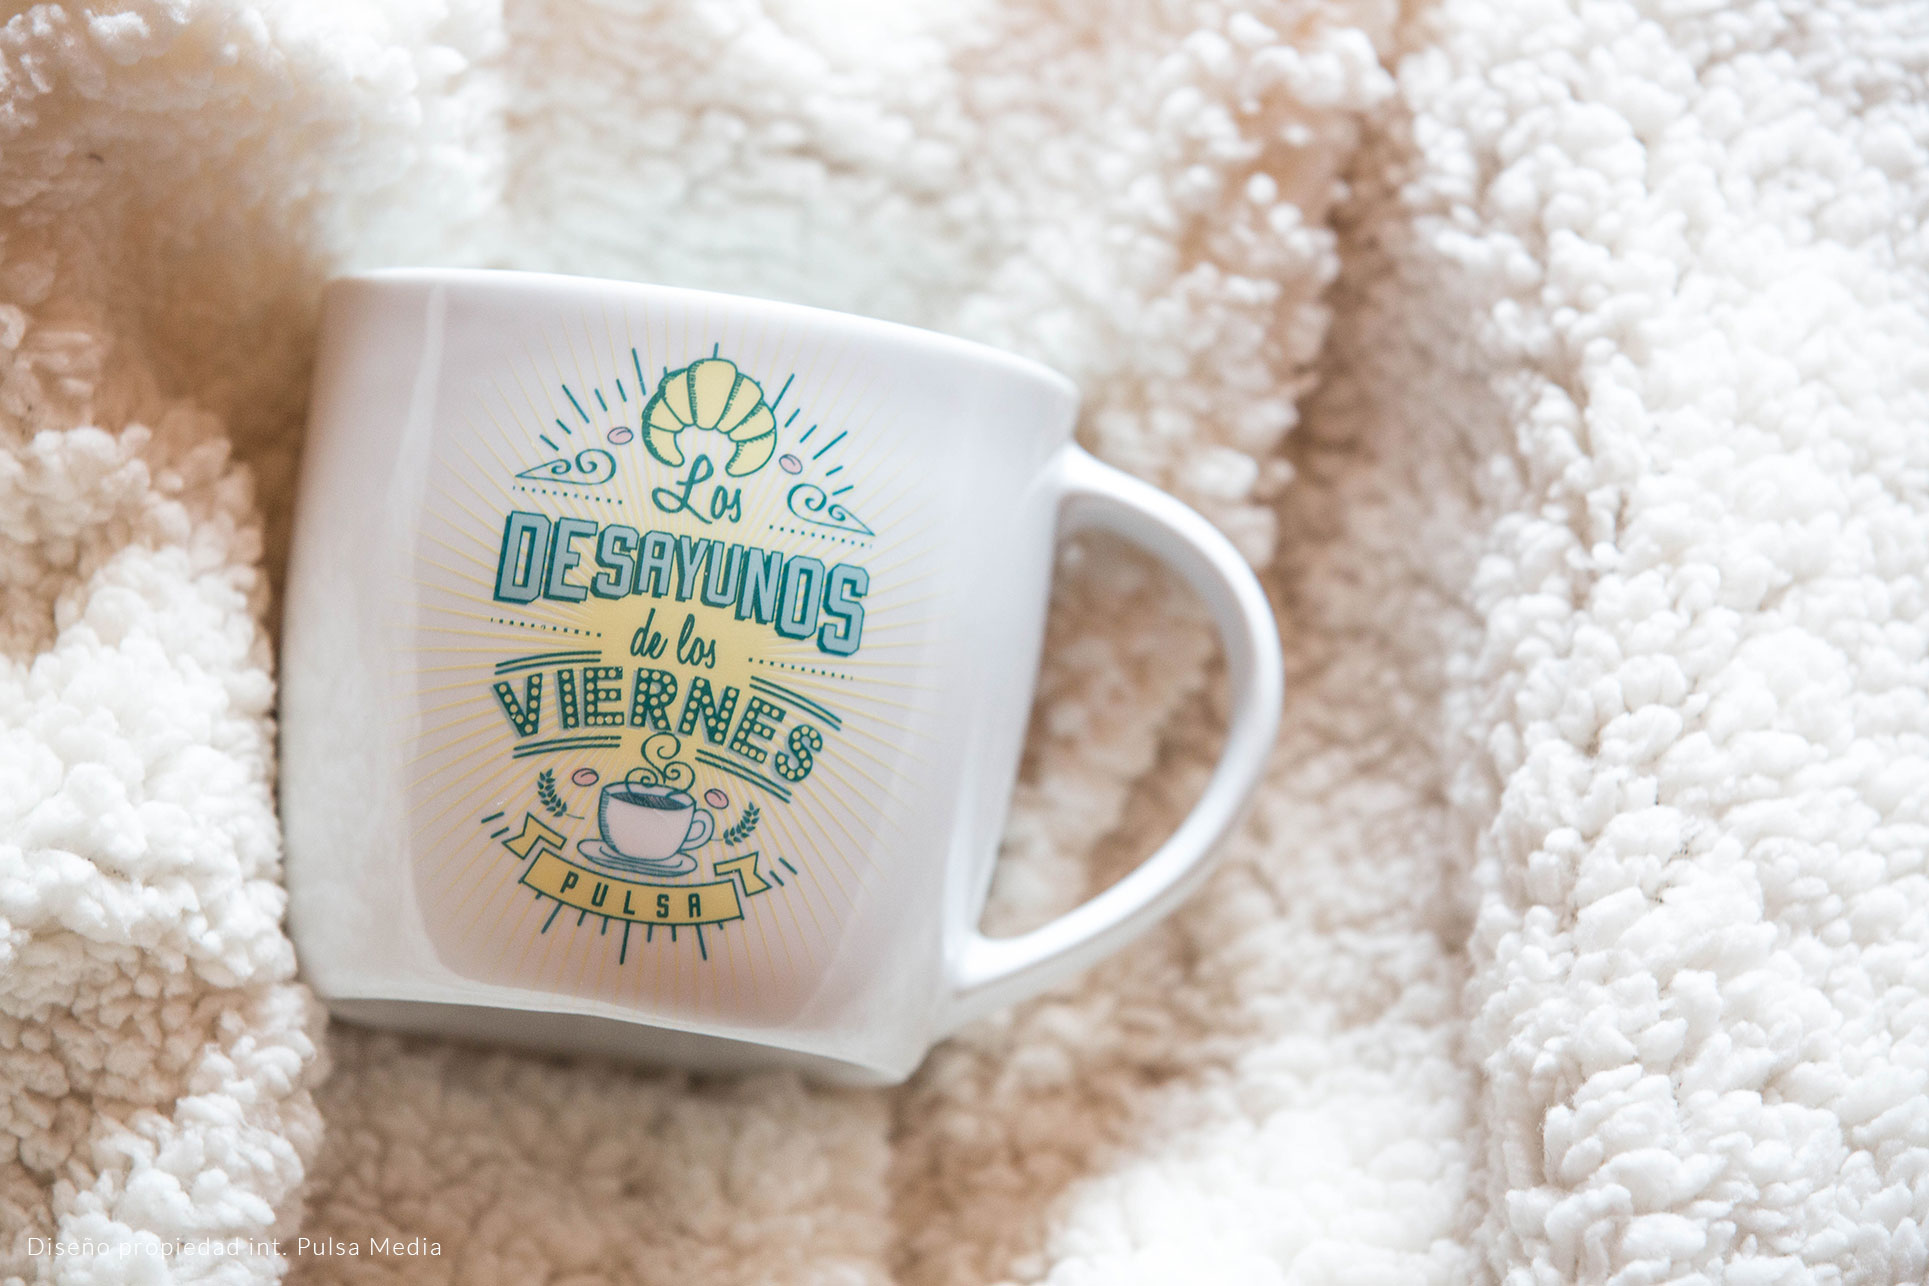 Personalized mug with transfer decal